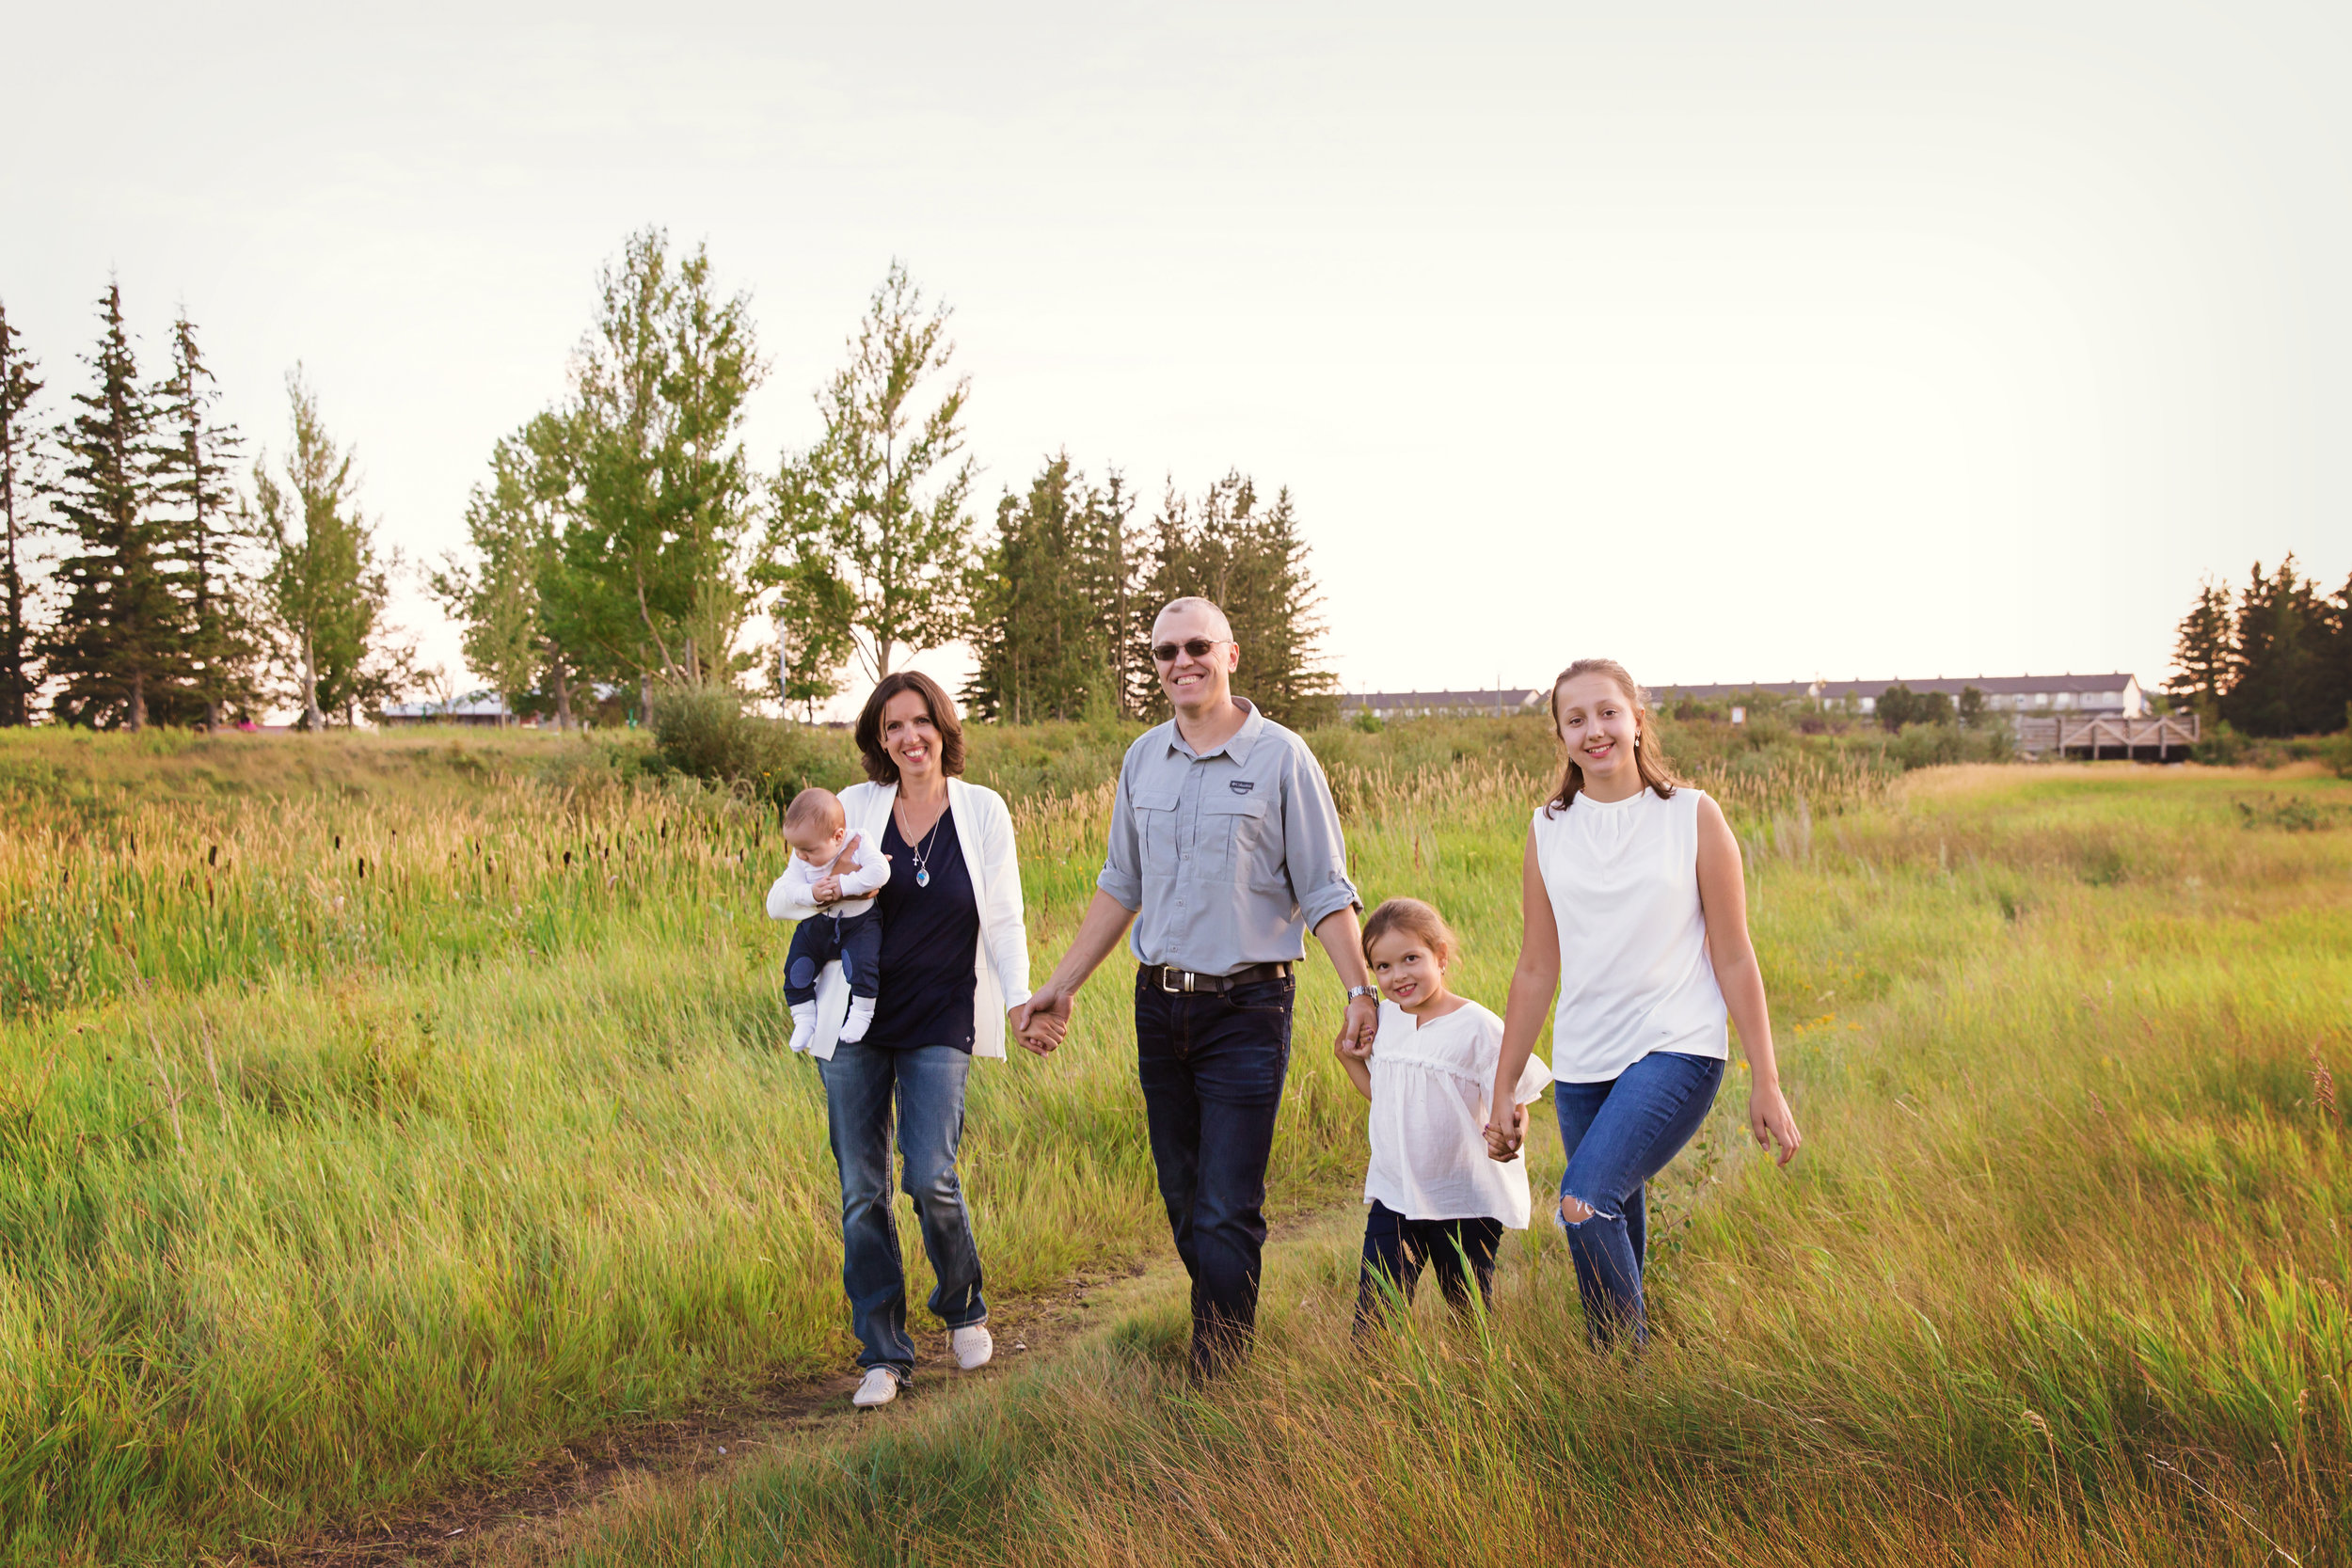 Family of 5 walking and holding hands during a warm summer evening at the Nose Creek Park in Airdrie, Alberta. Airdrie family photographer - Milashka Photography